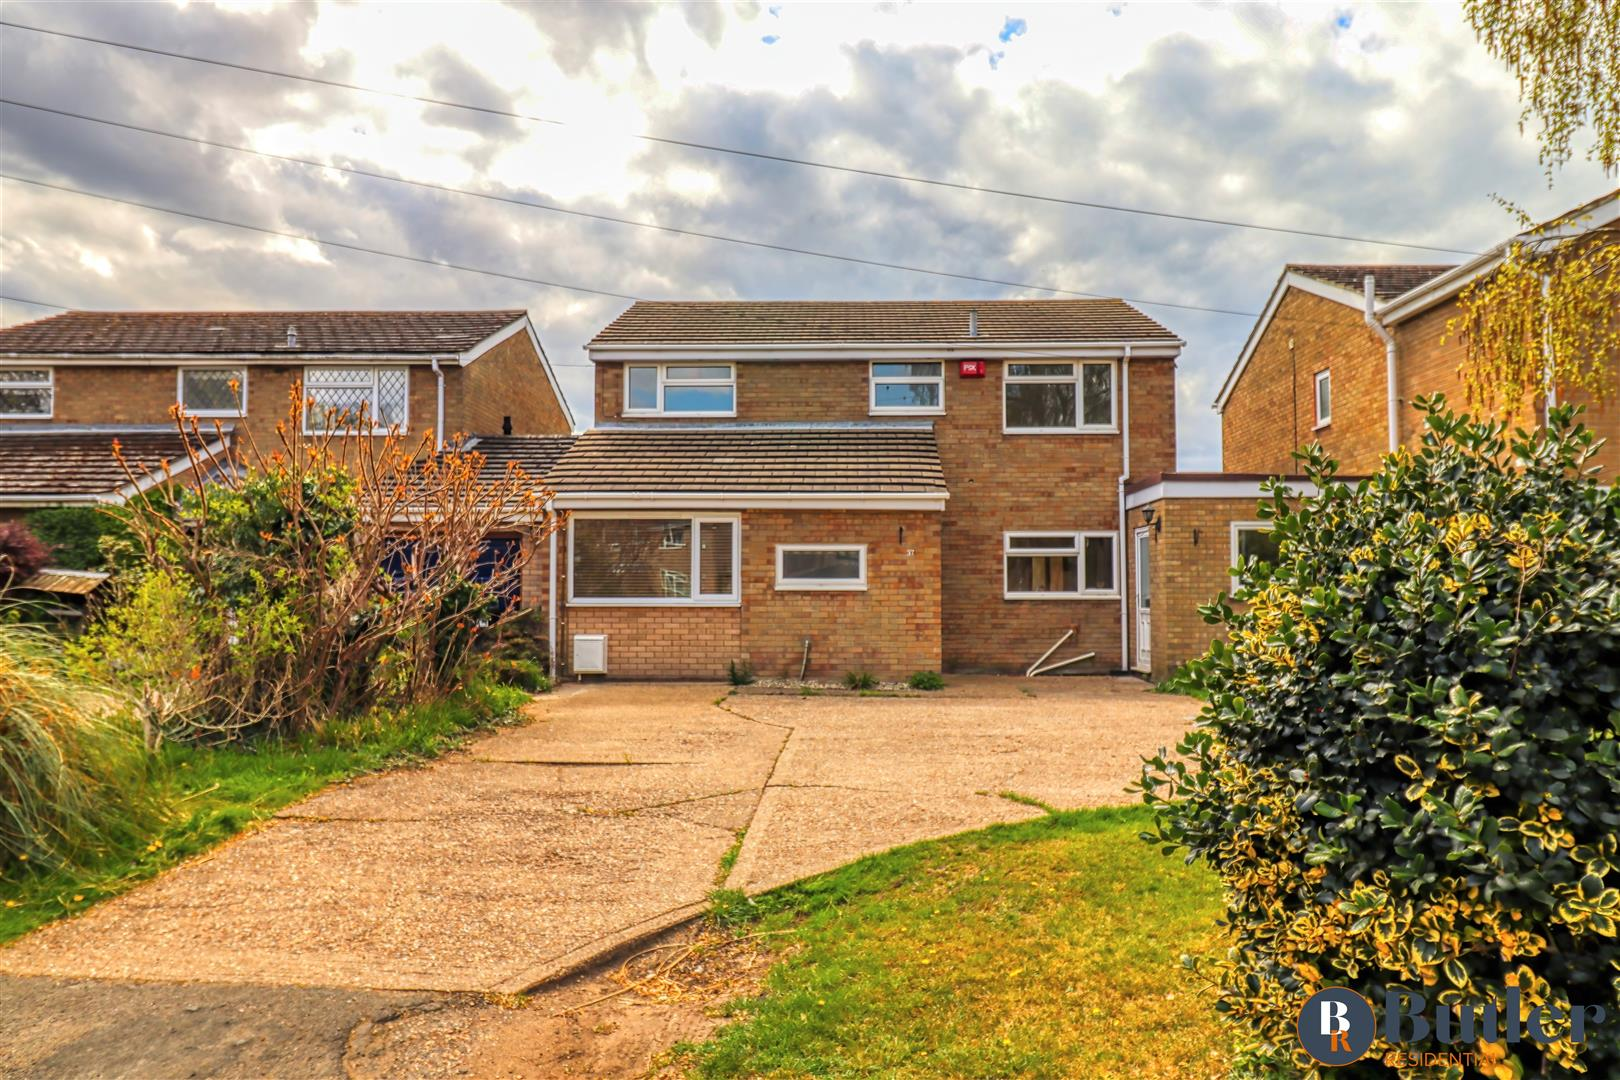 4 bed detached house for sale in Mill Road, St. Neots  - Property Image 3